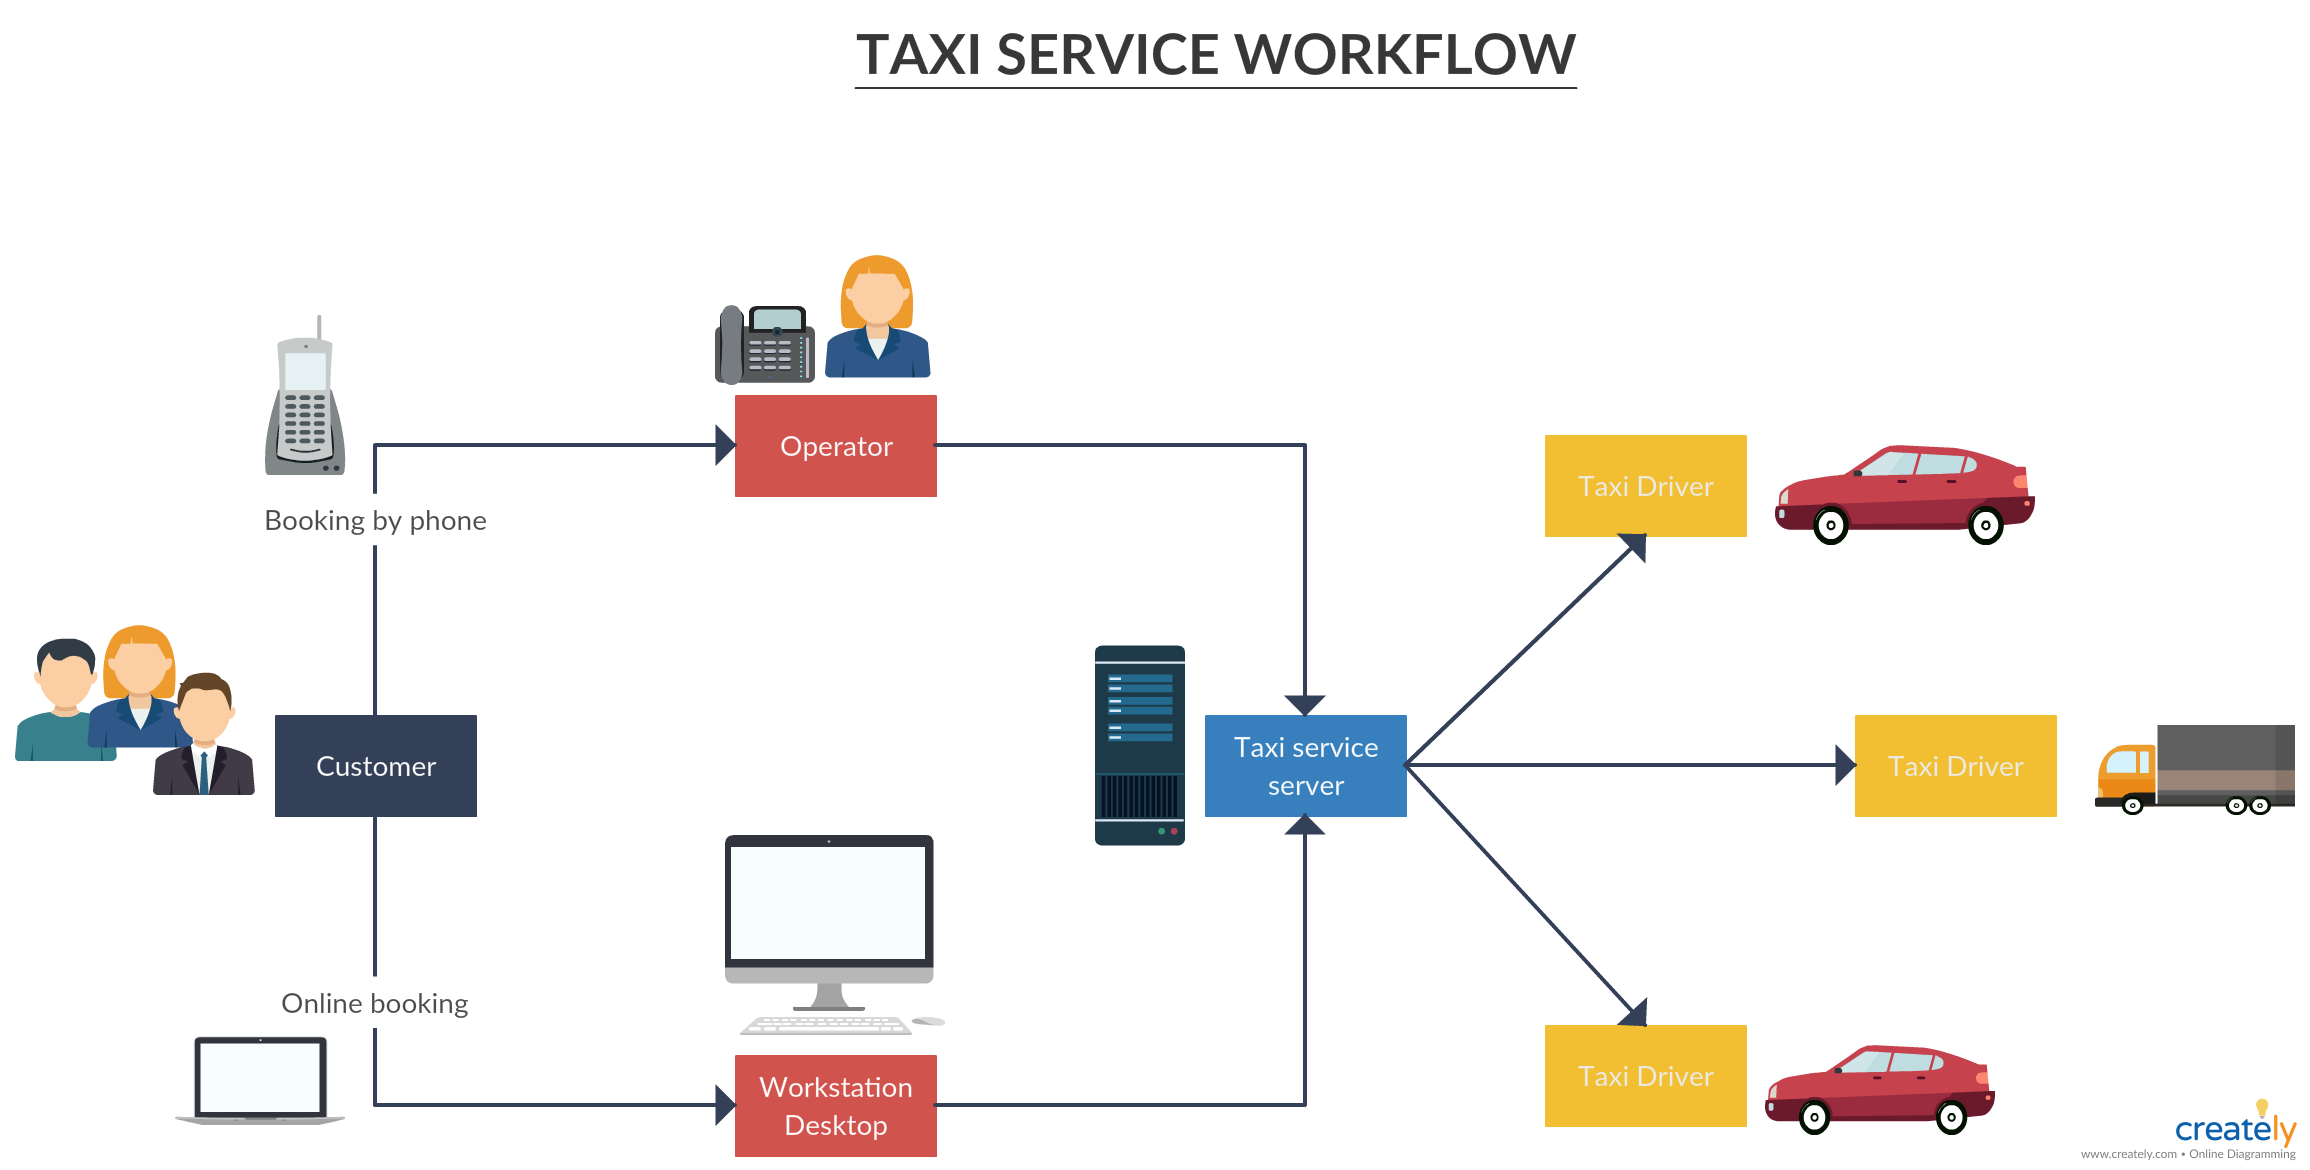 Taxi Service Workflow - A process flow diagram to show how taxi